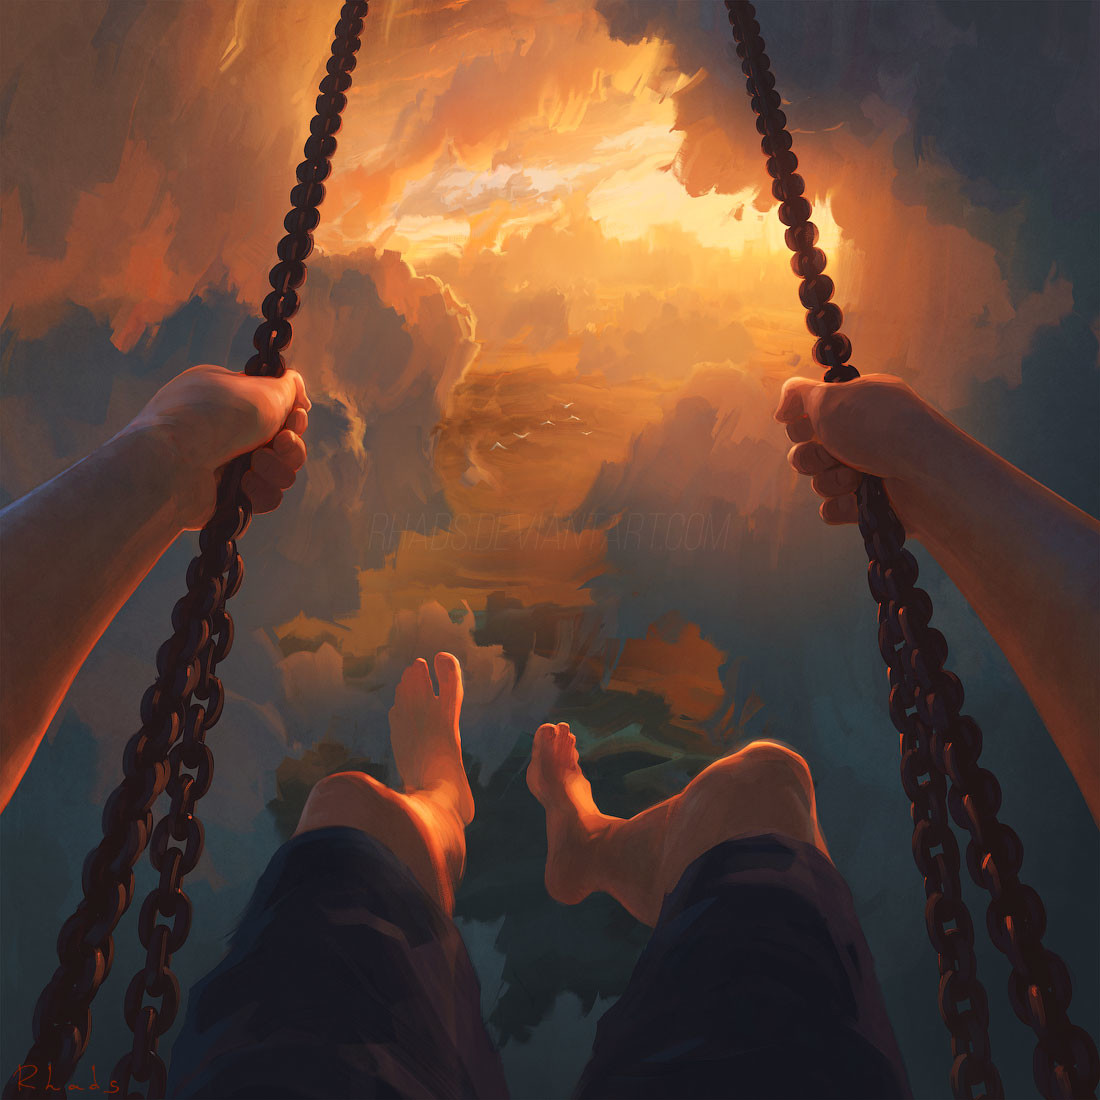 Digital Painting Illustration Artem Chebokha Rhads Clouds playing